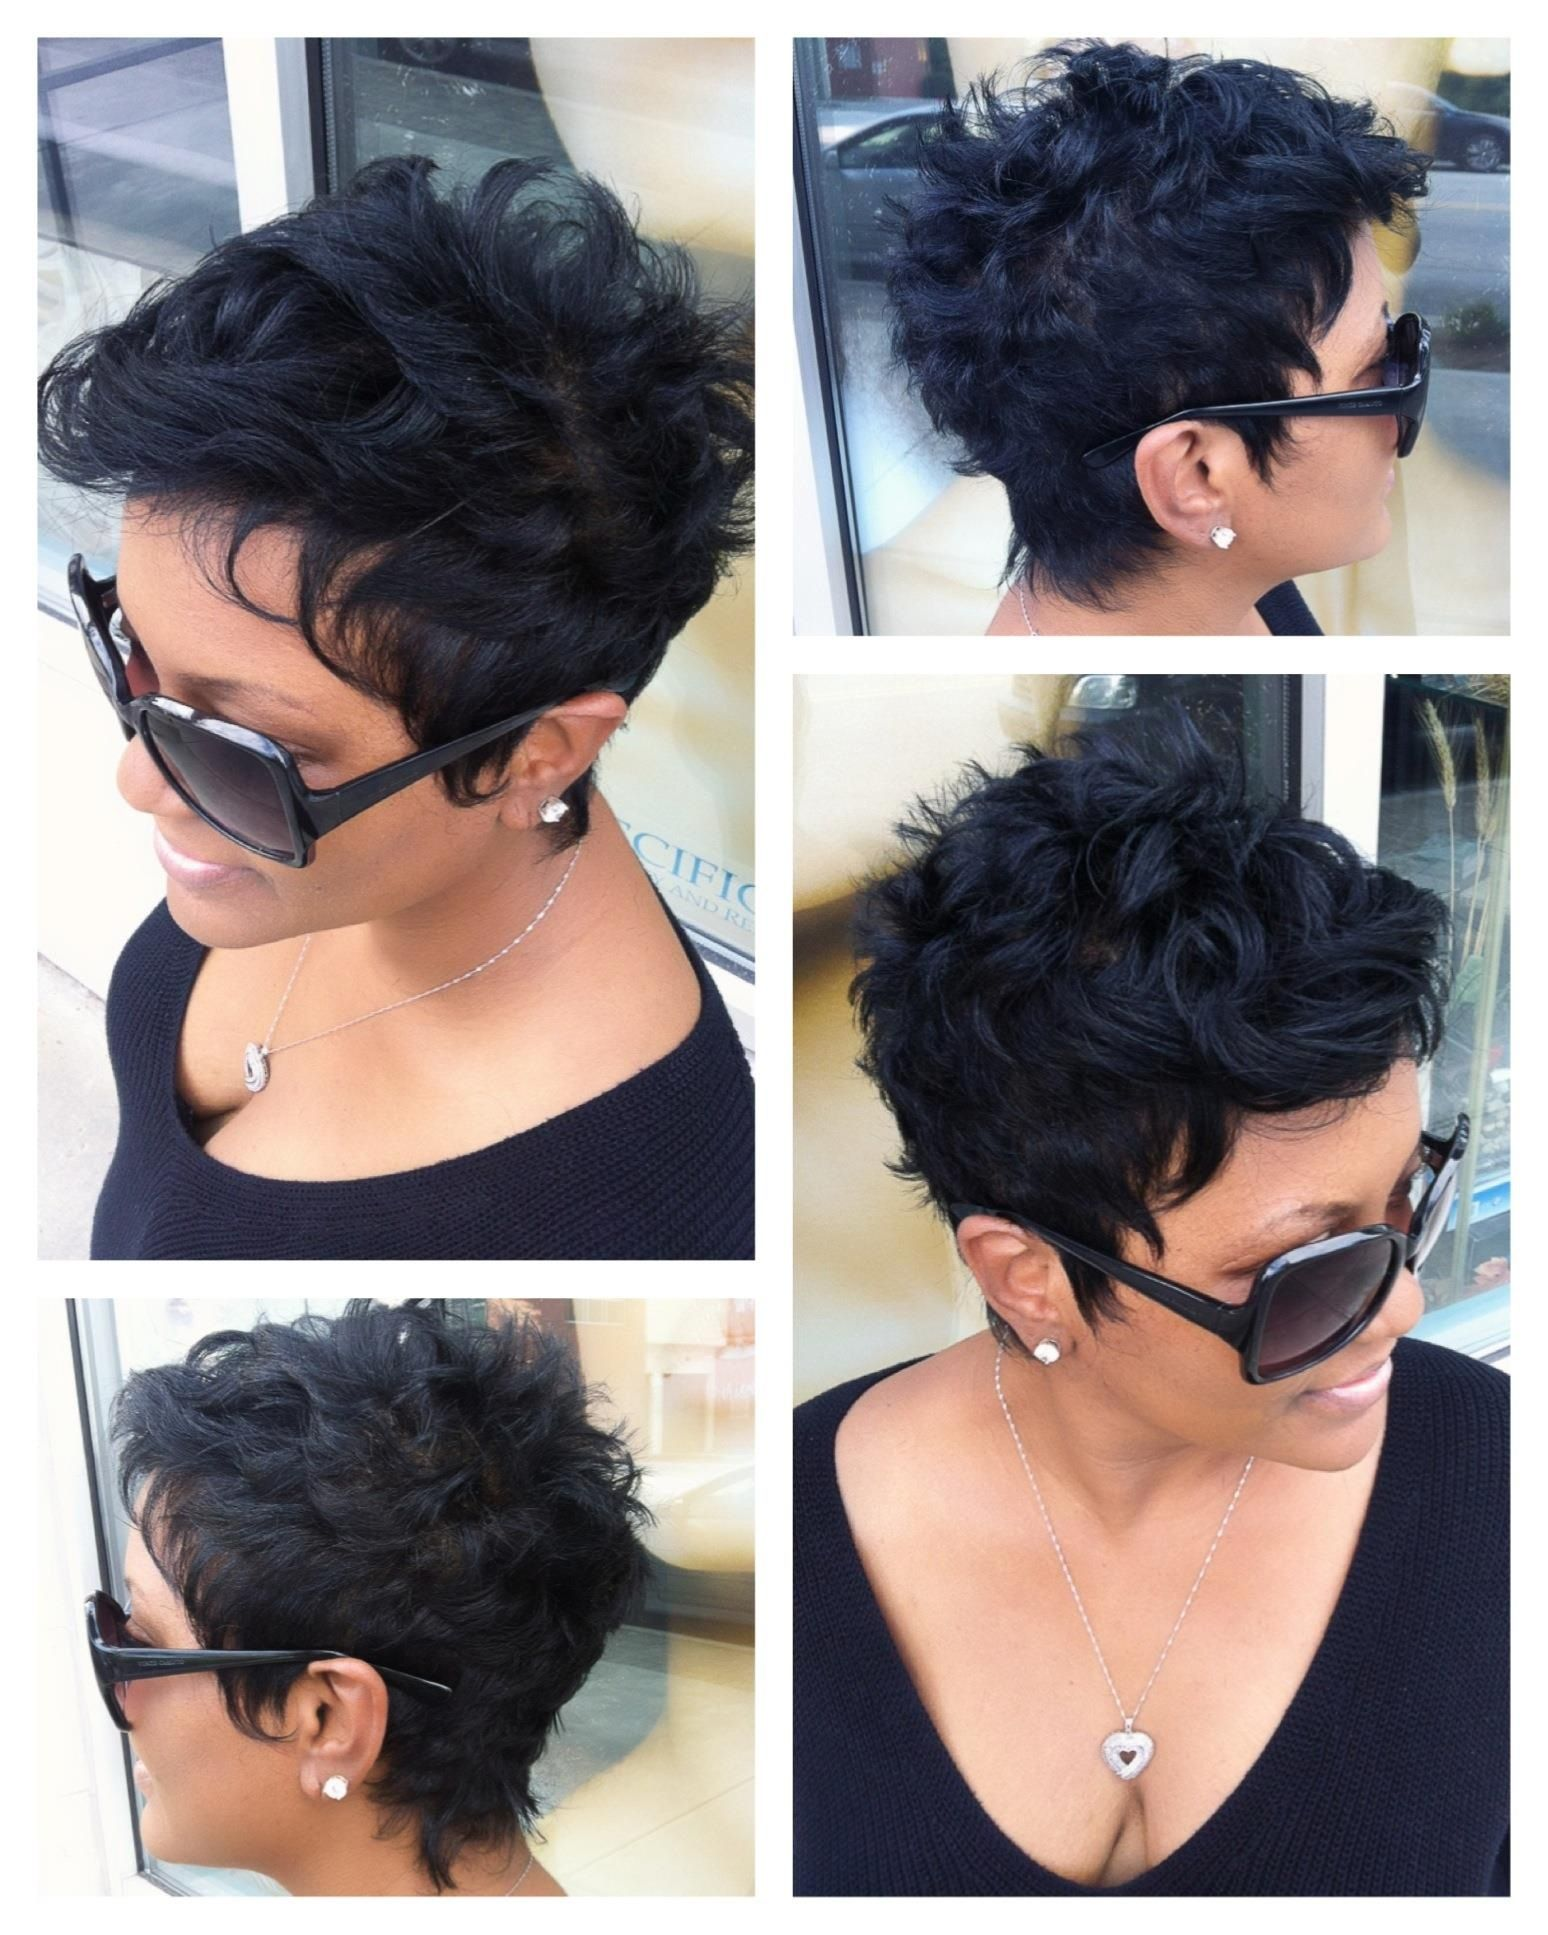 stunning short hairstyle ideas for wavy hair owners | short